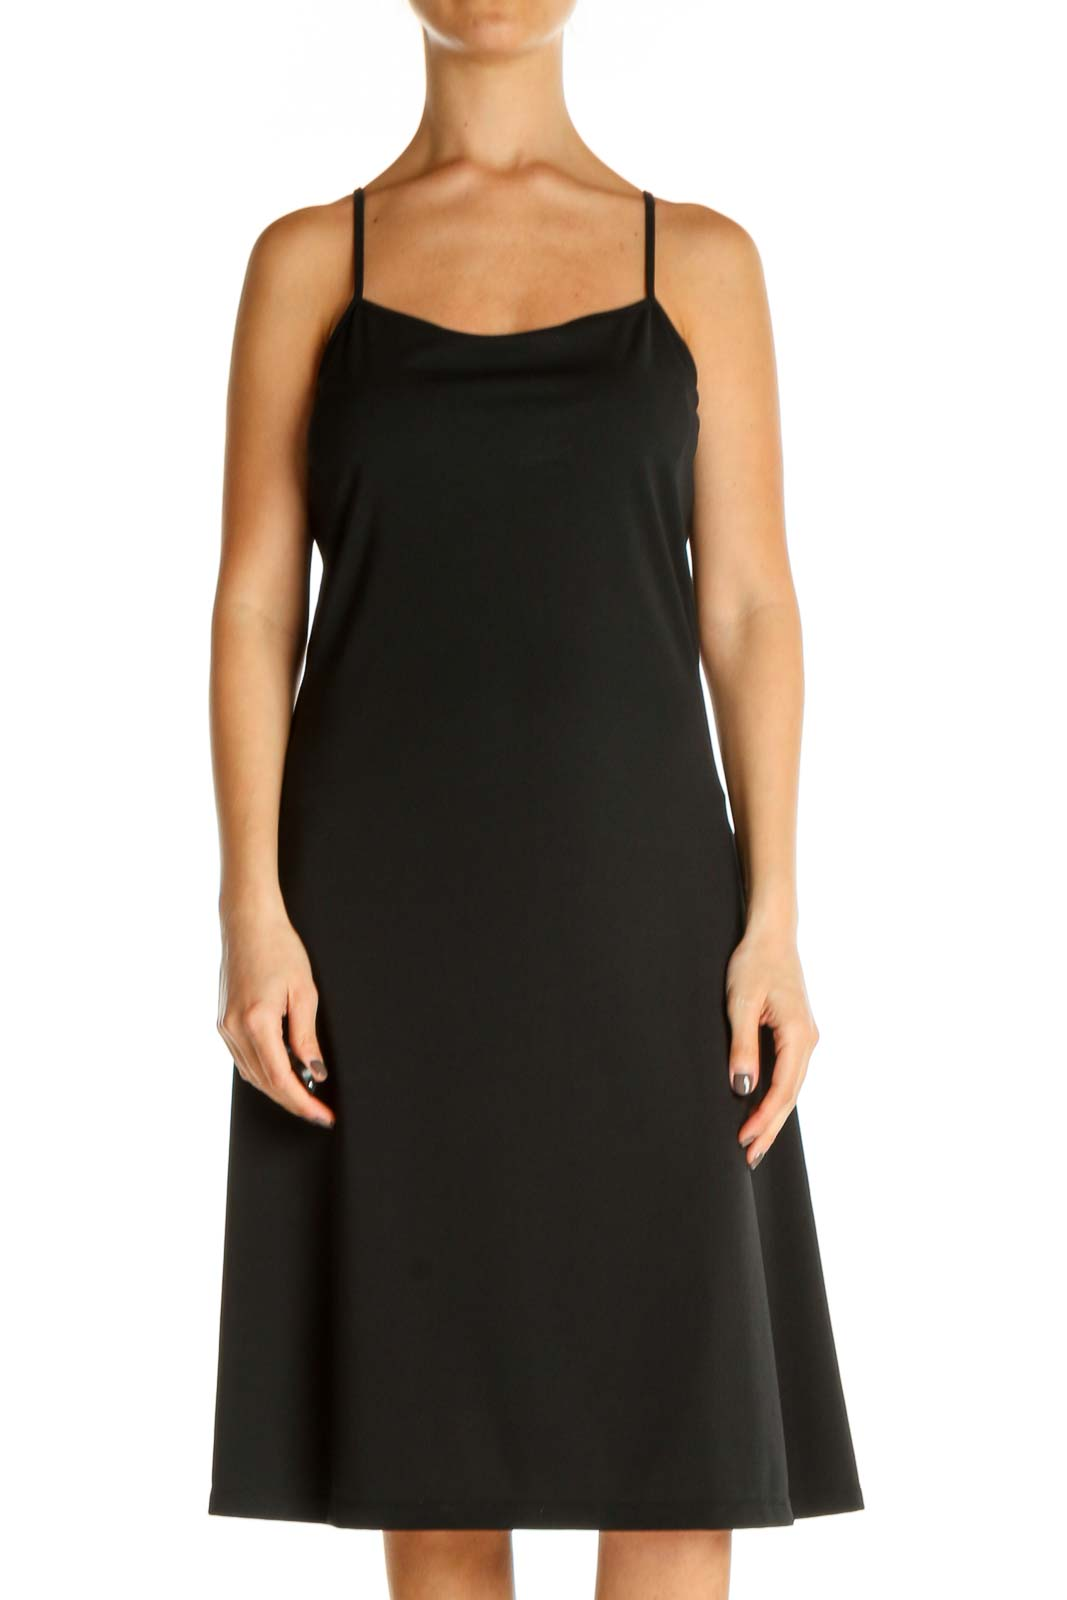 Black Solid Classic A-Line Dress Front